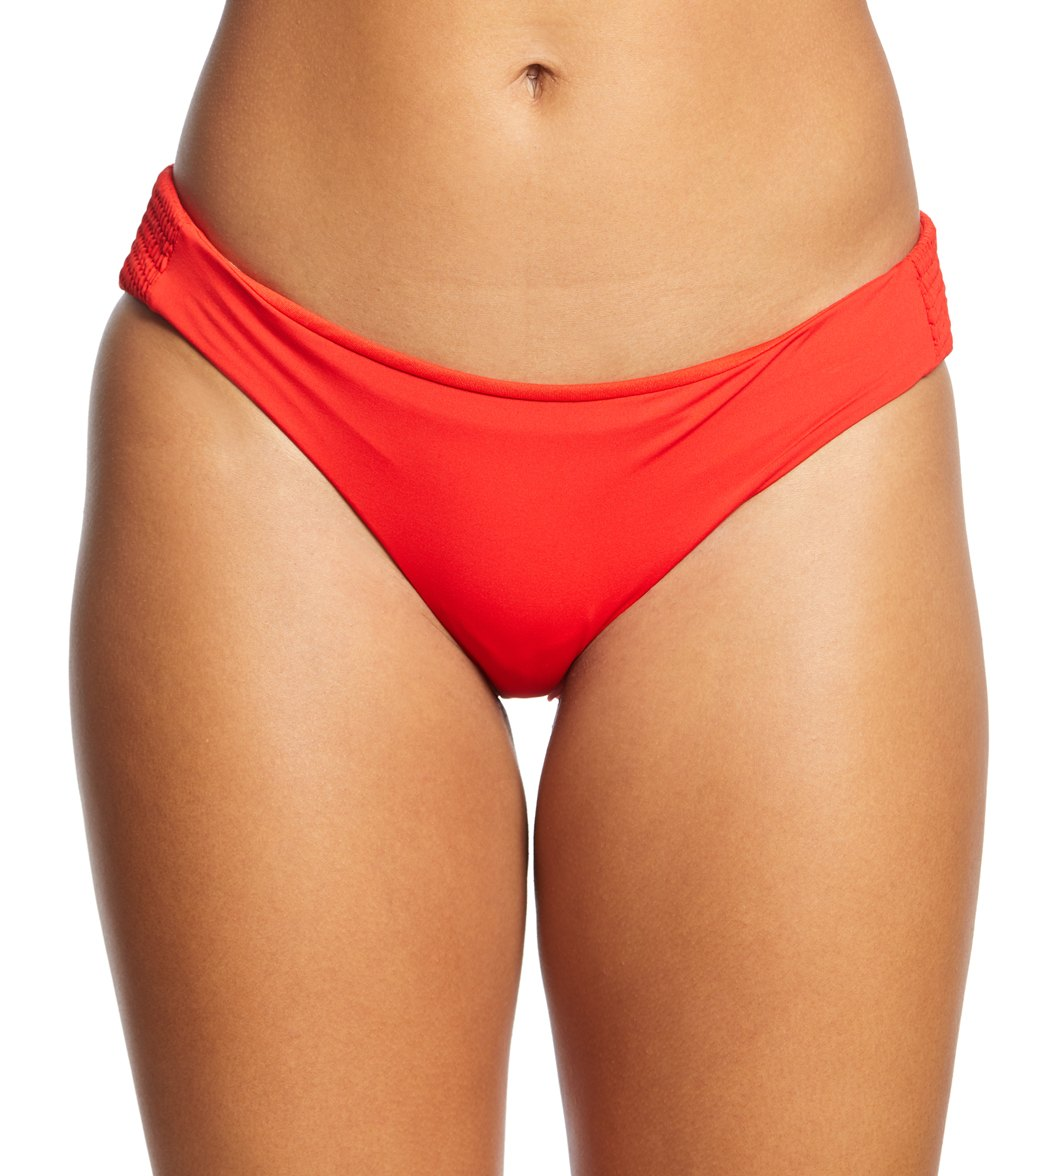 Billabong Sol Searcher Lowrider Bikini Bottom at SwimOutlet.com acdc4b5b7